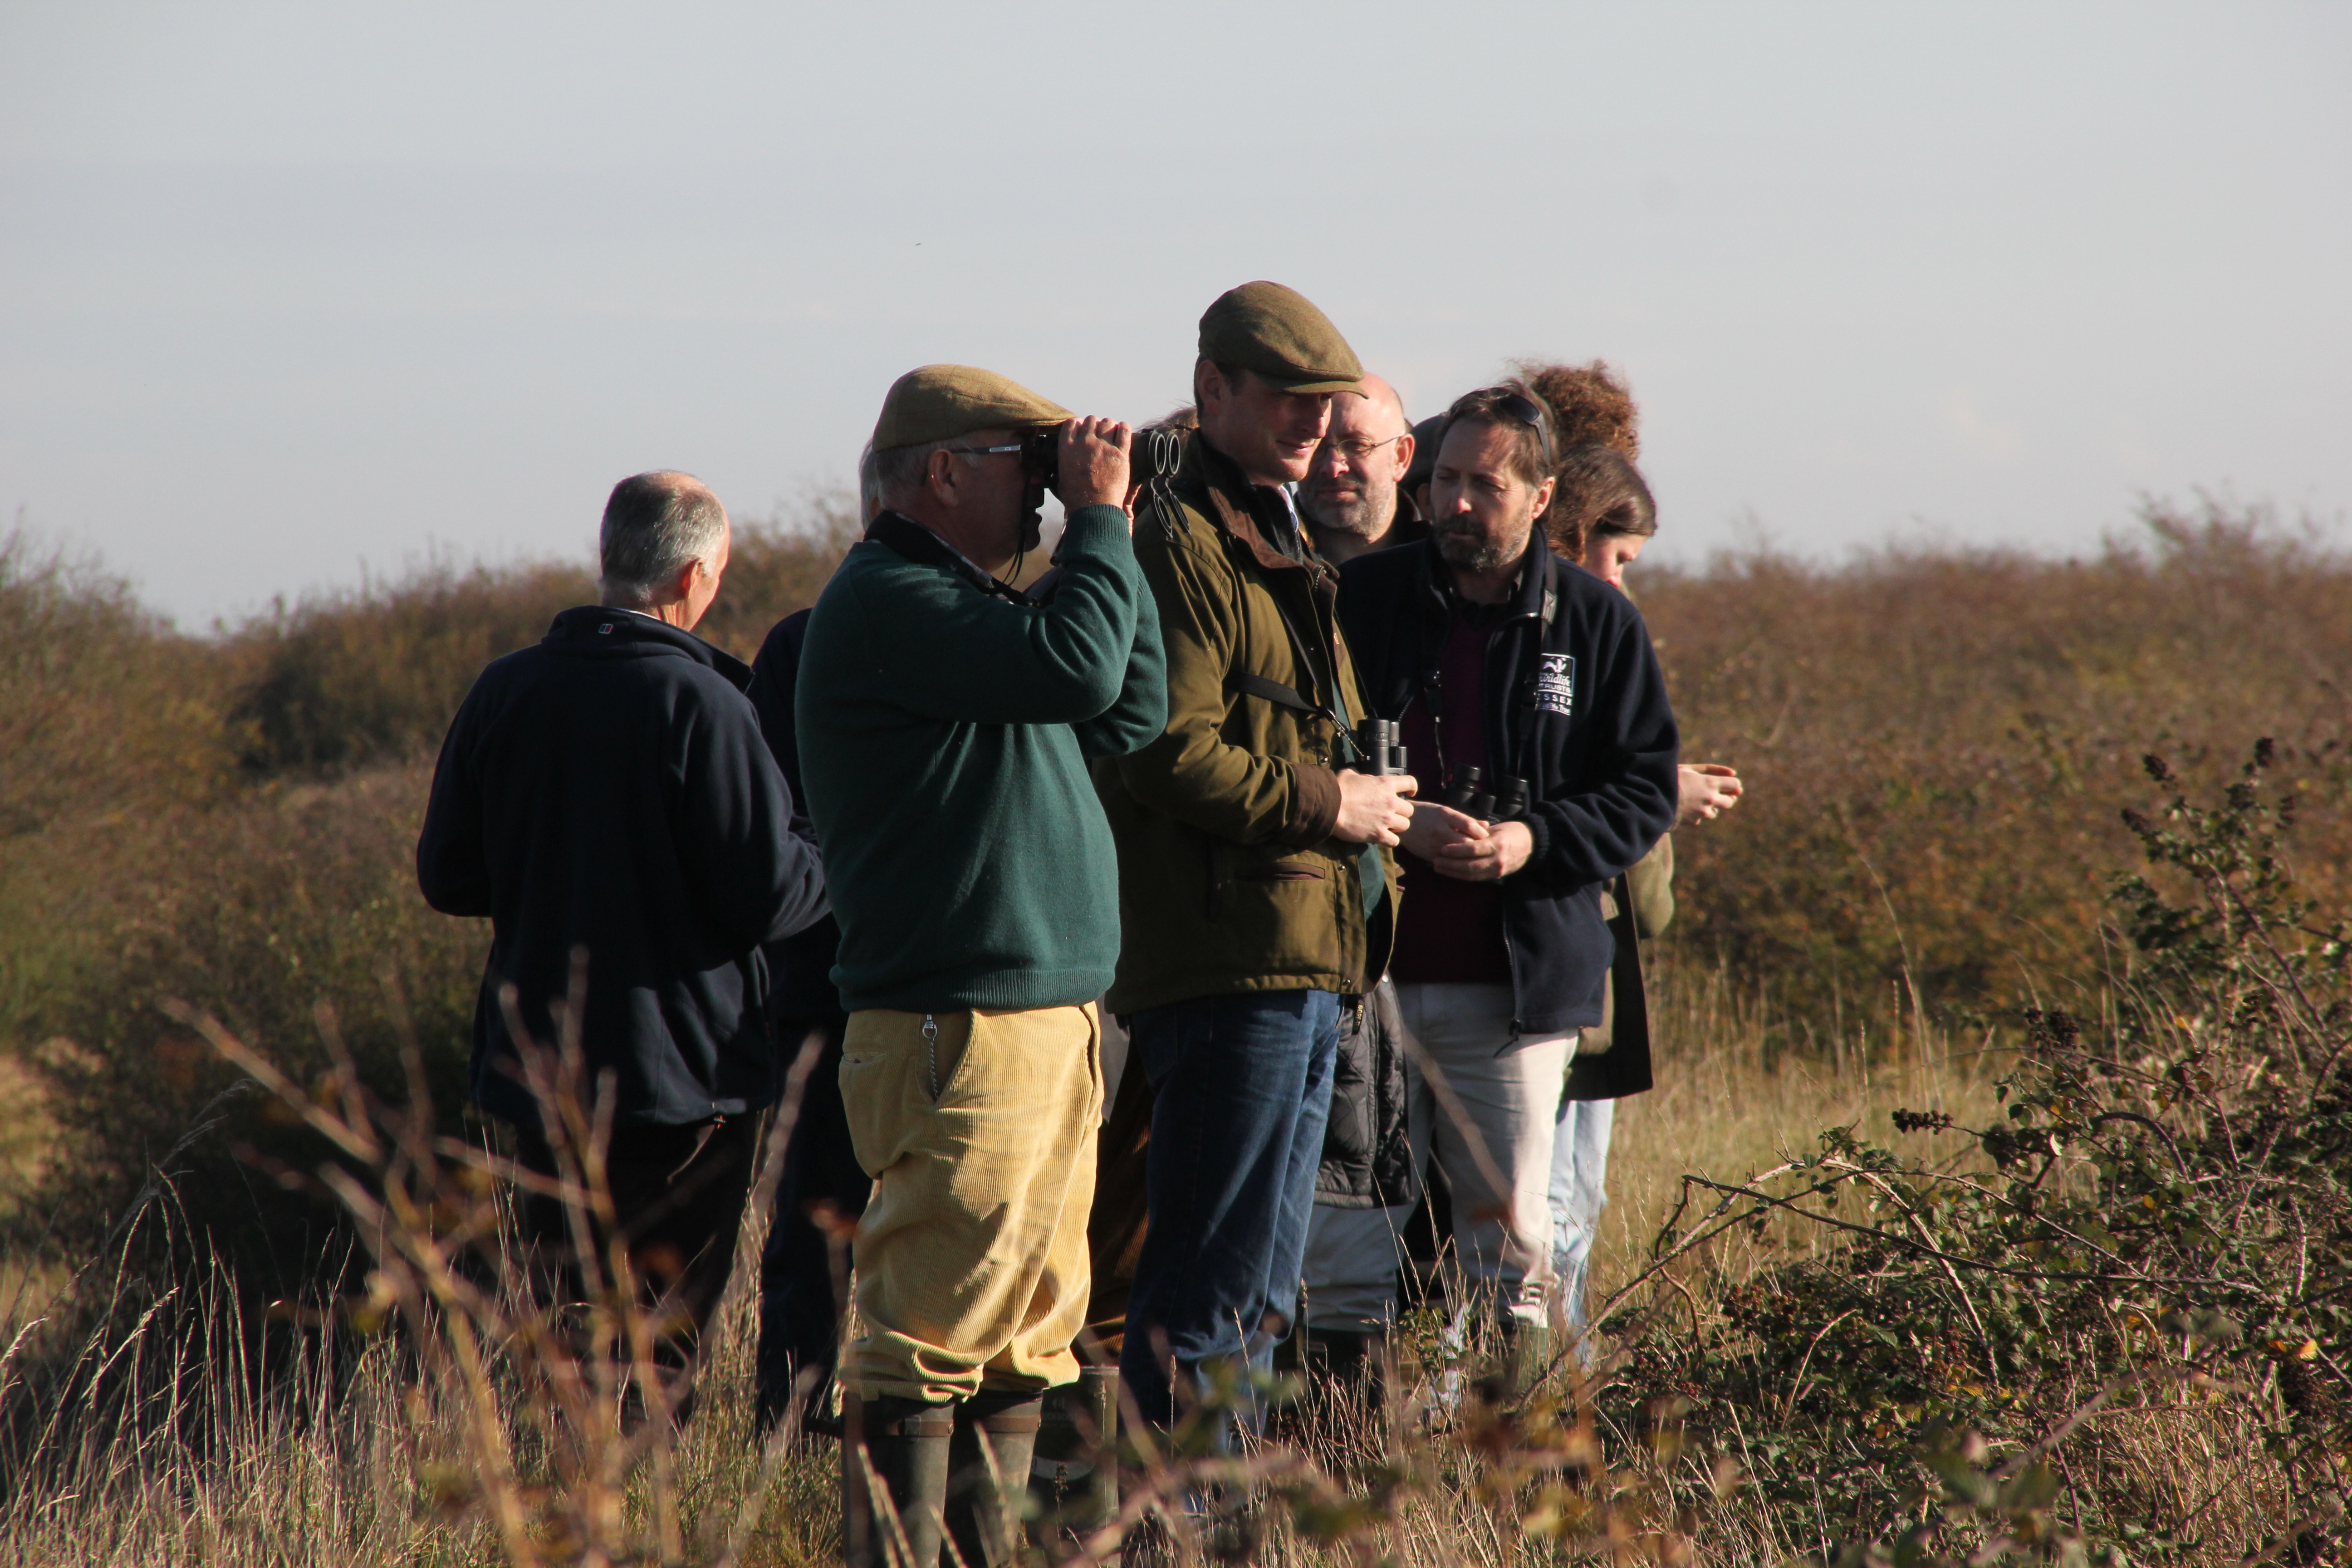 The launch of a turtle dove friendly zone